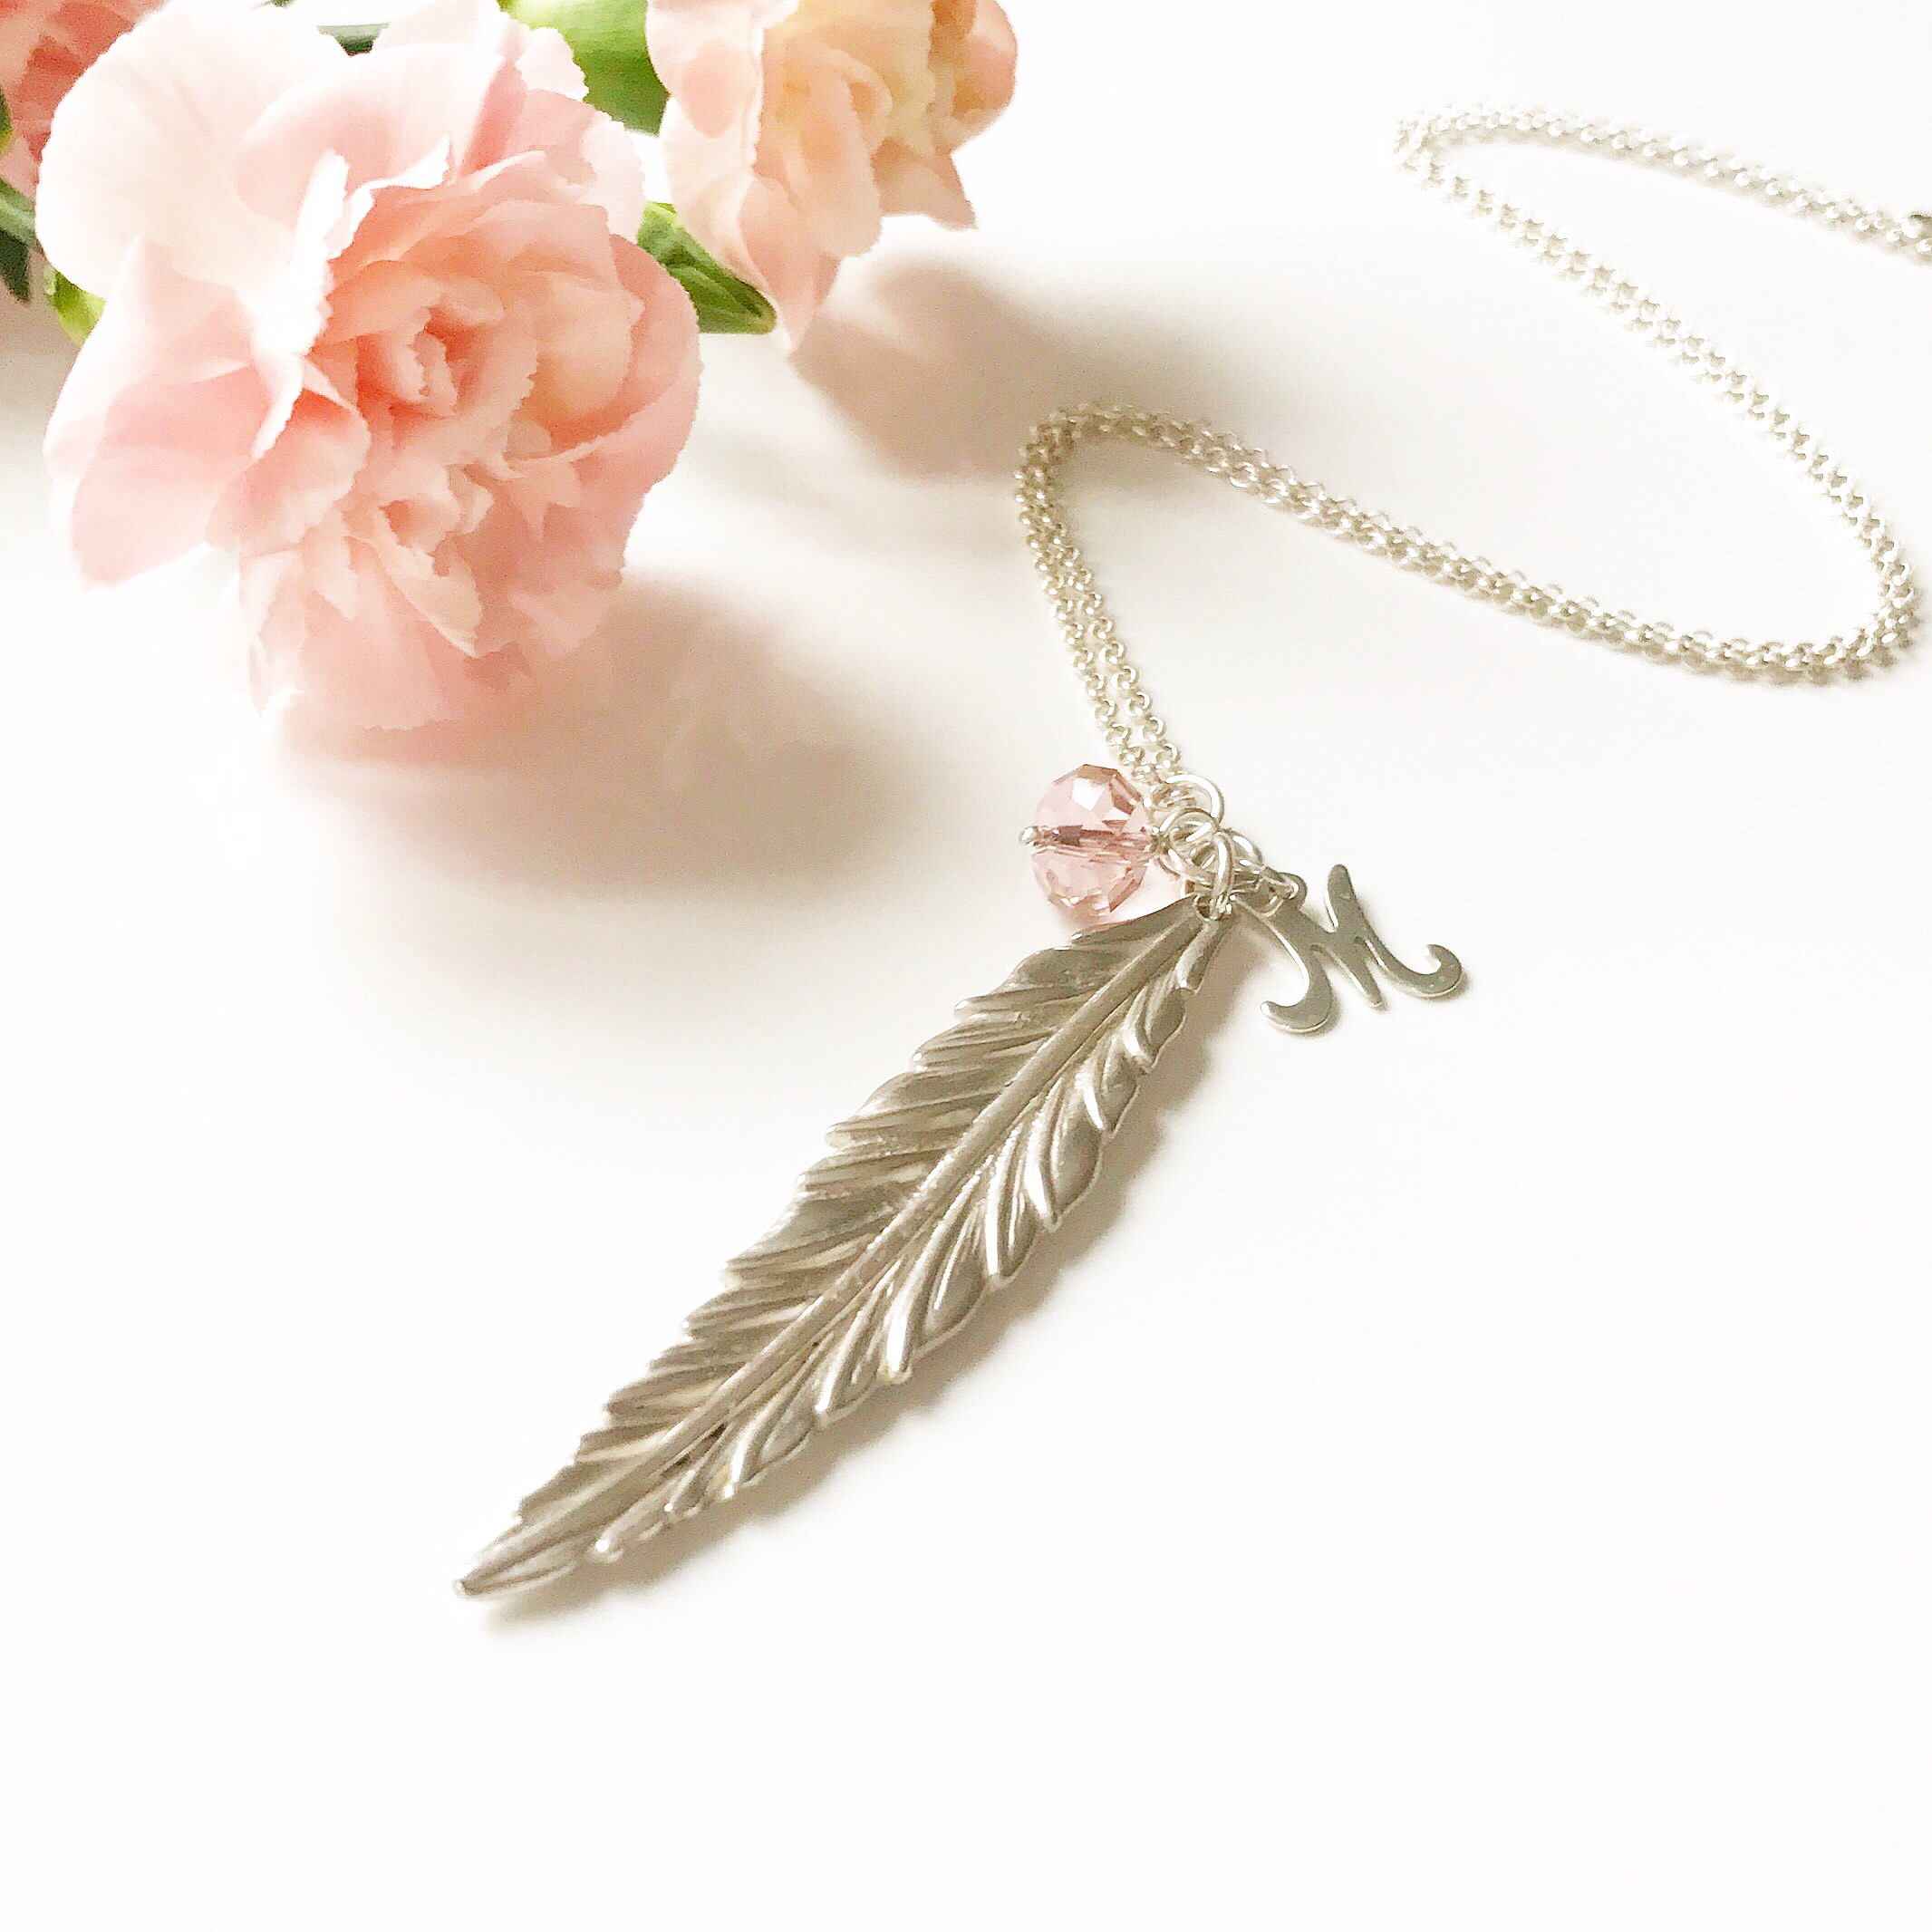 Feather Initial Necklace with Vintage Rose Crystal   Me Me Jewellery